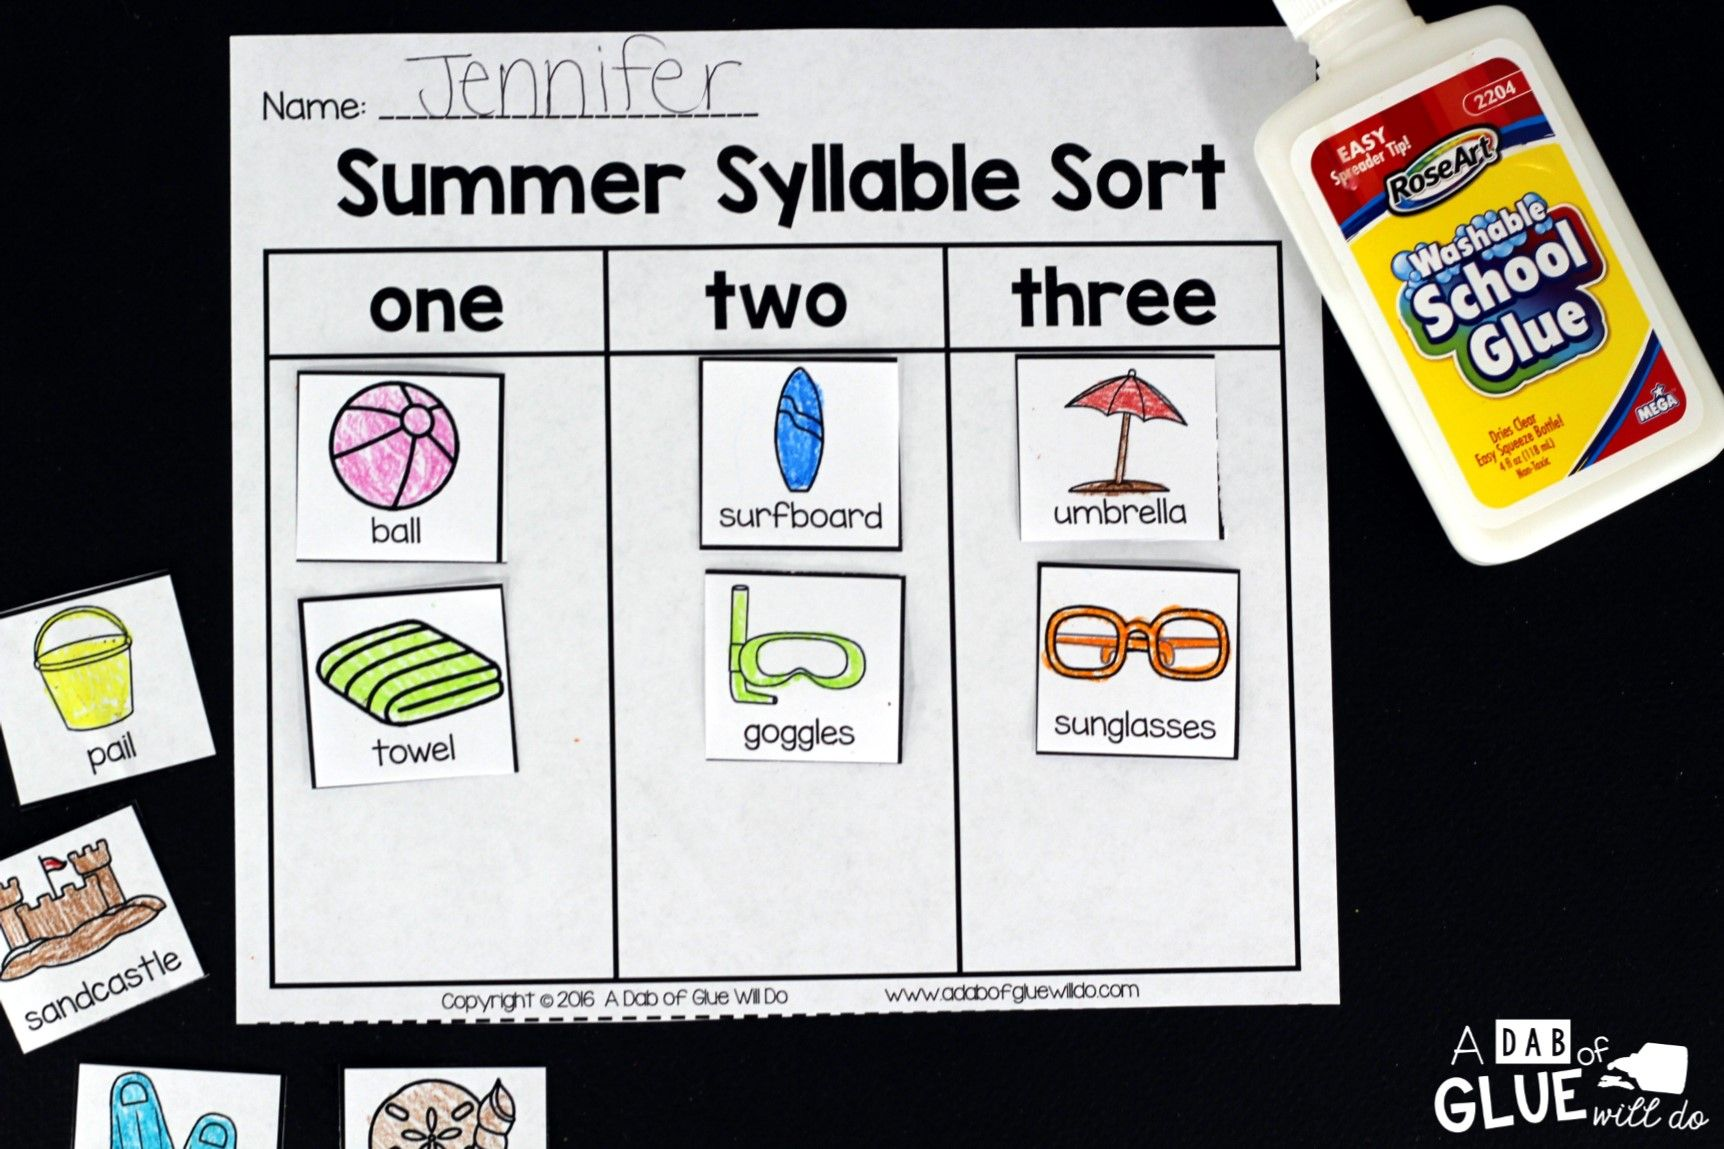 Summer Syllable Sort